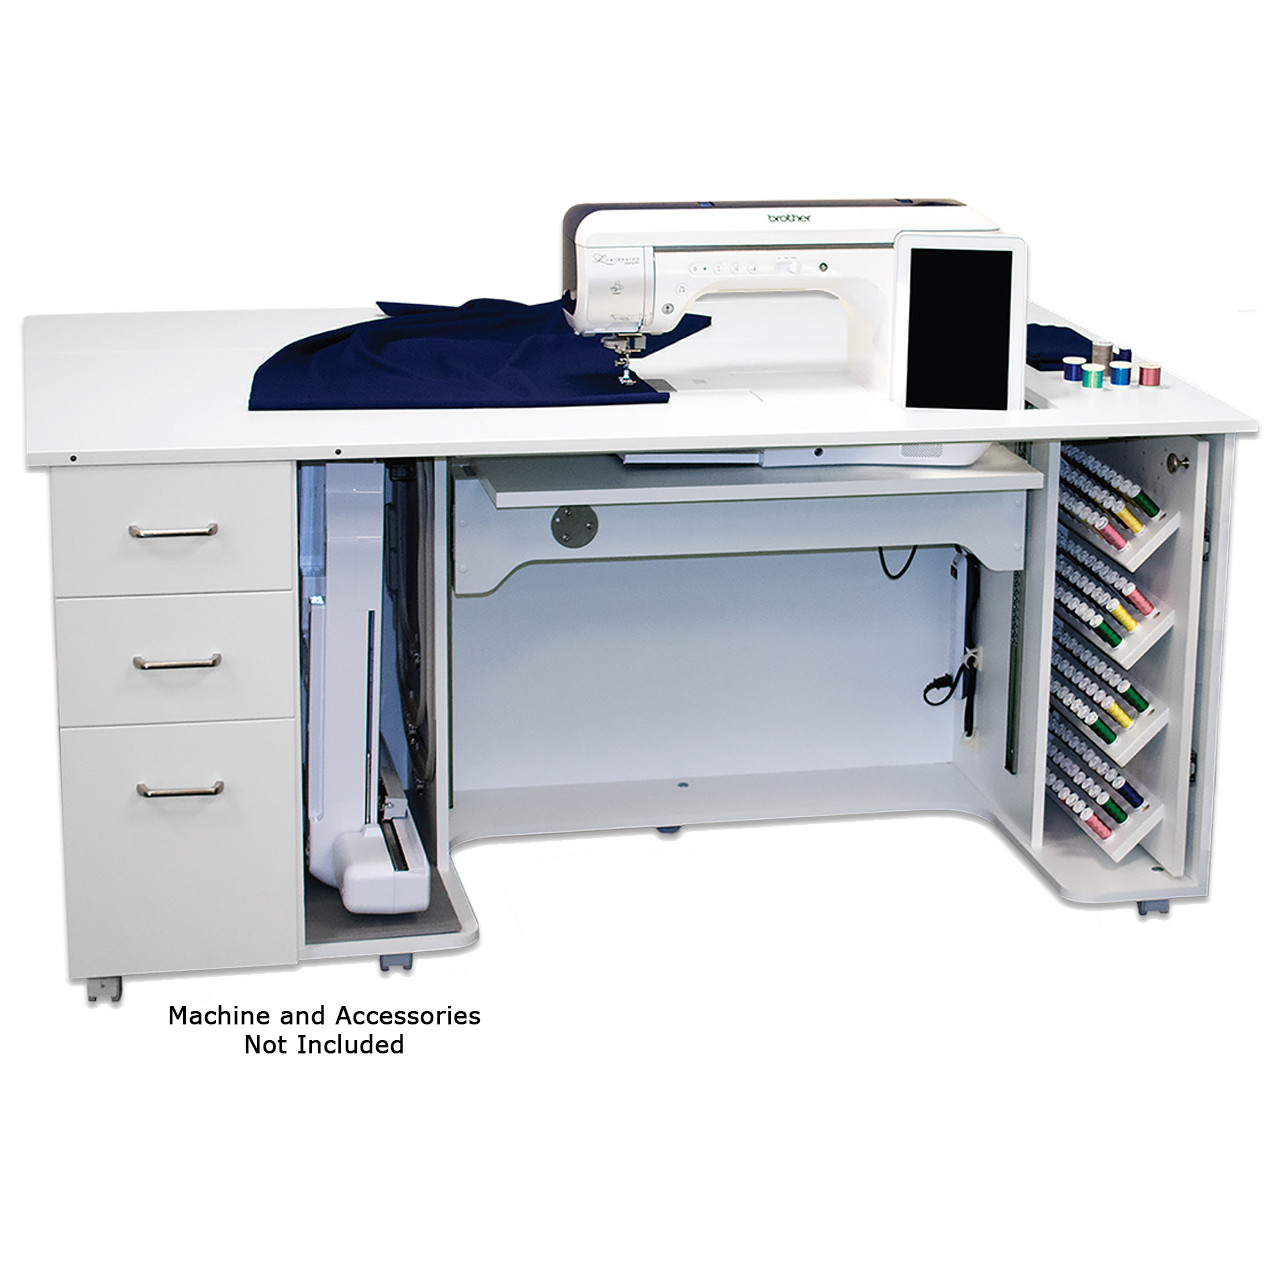 Horn Model 8080 Luminaire / Solaris Sewing Cabinet